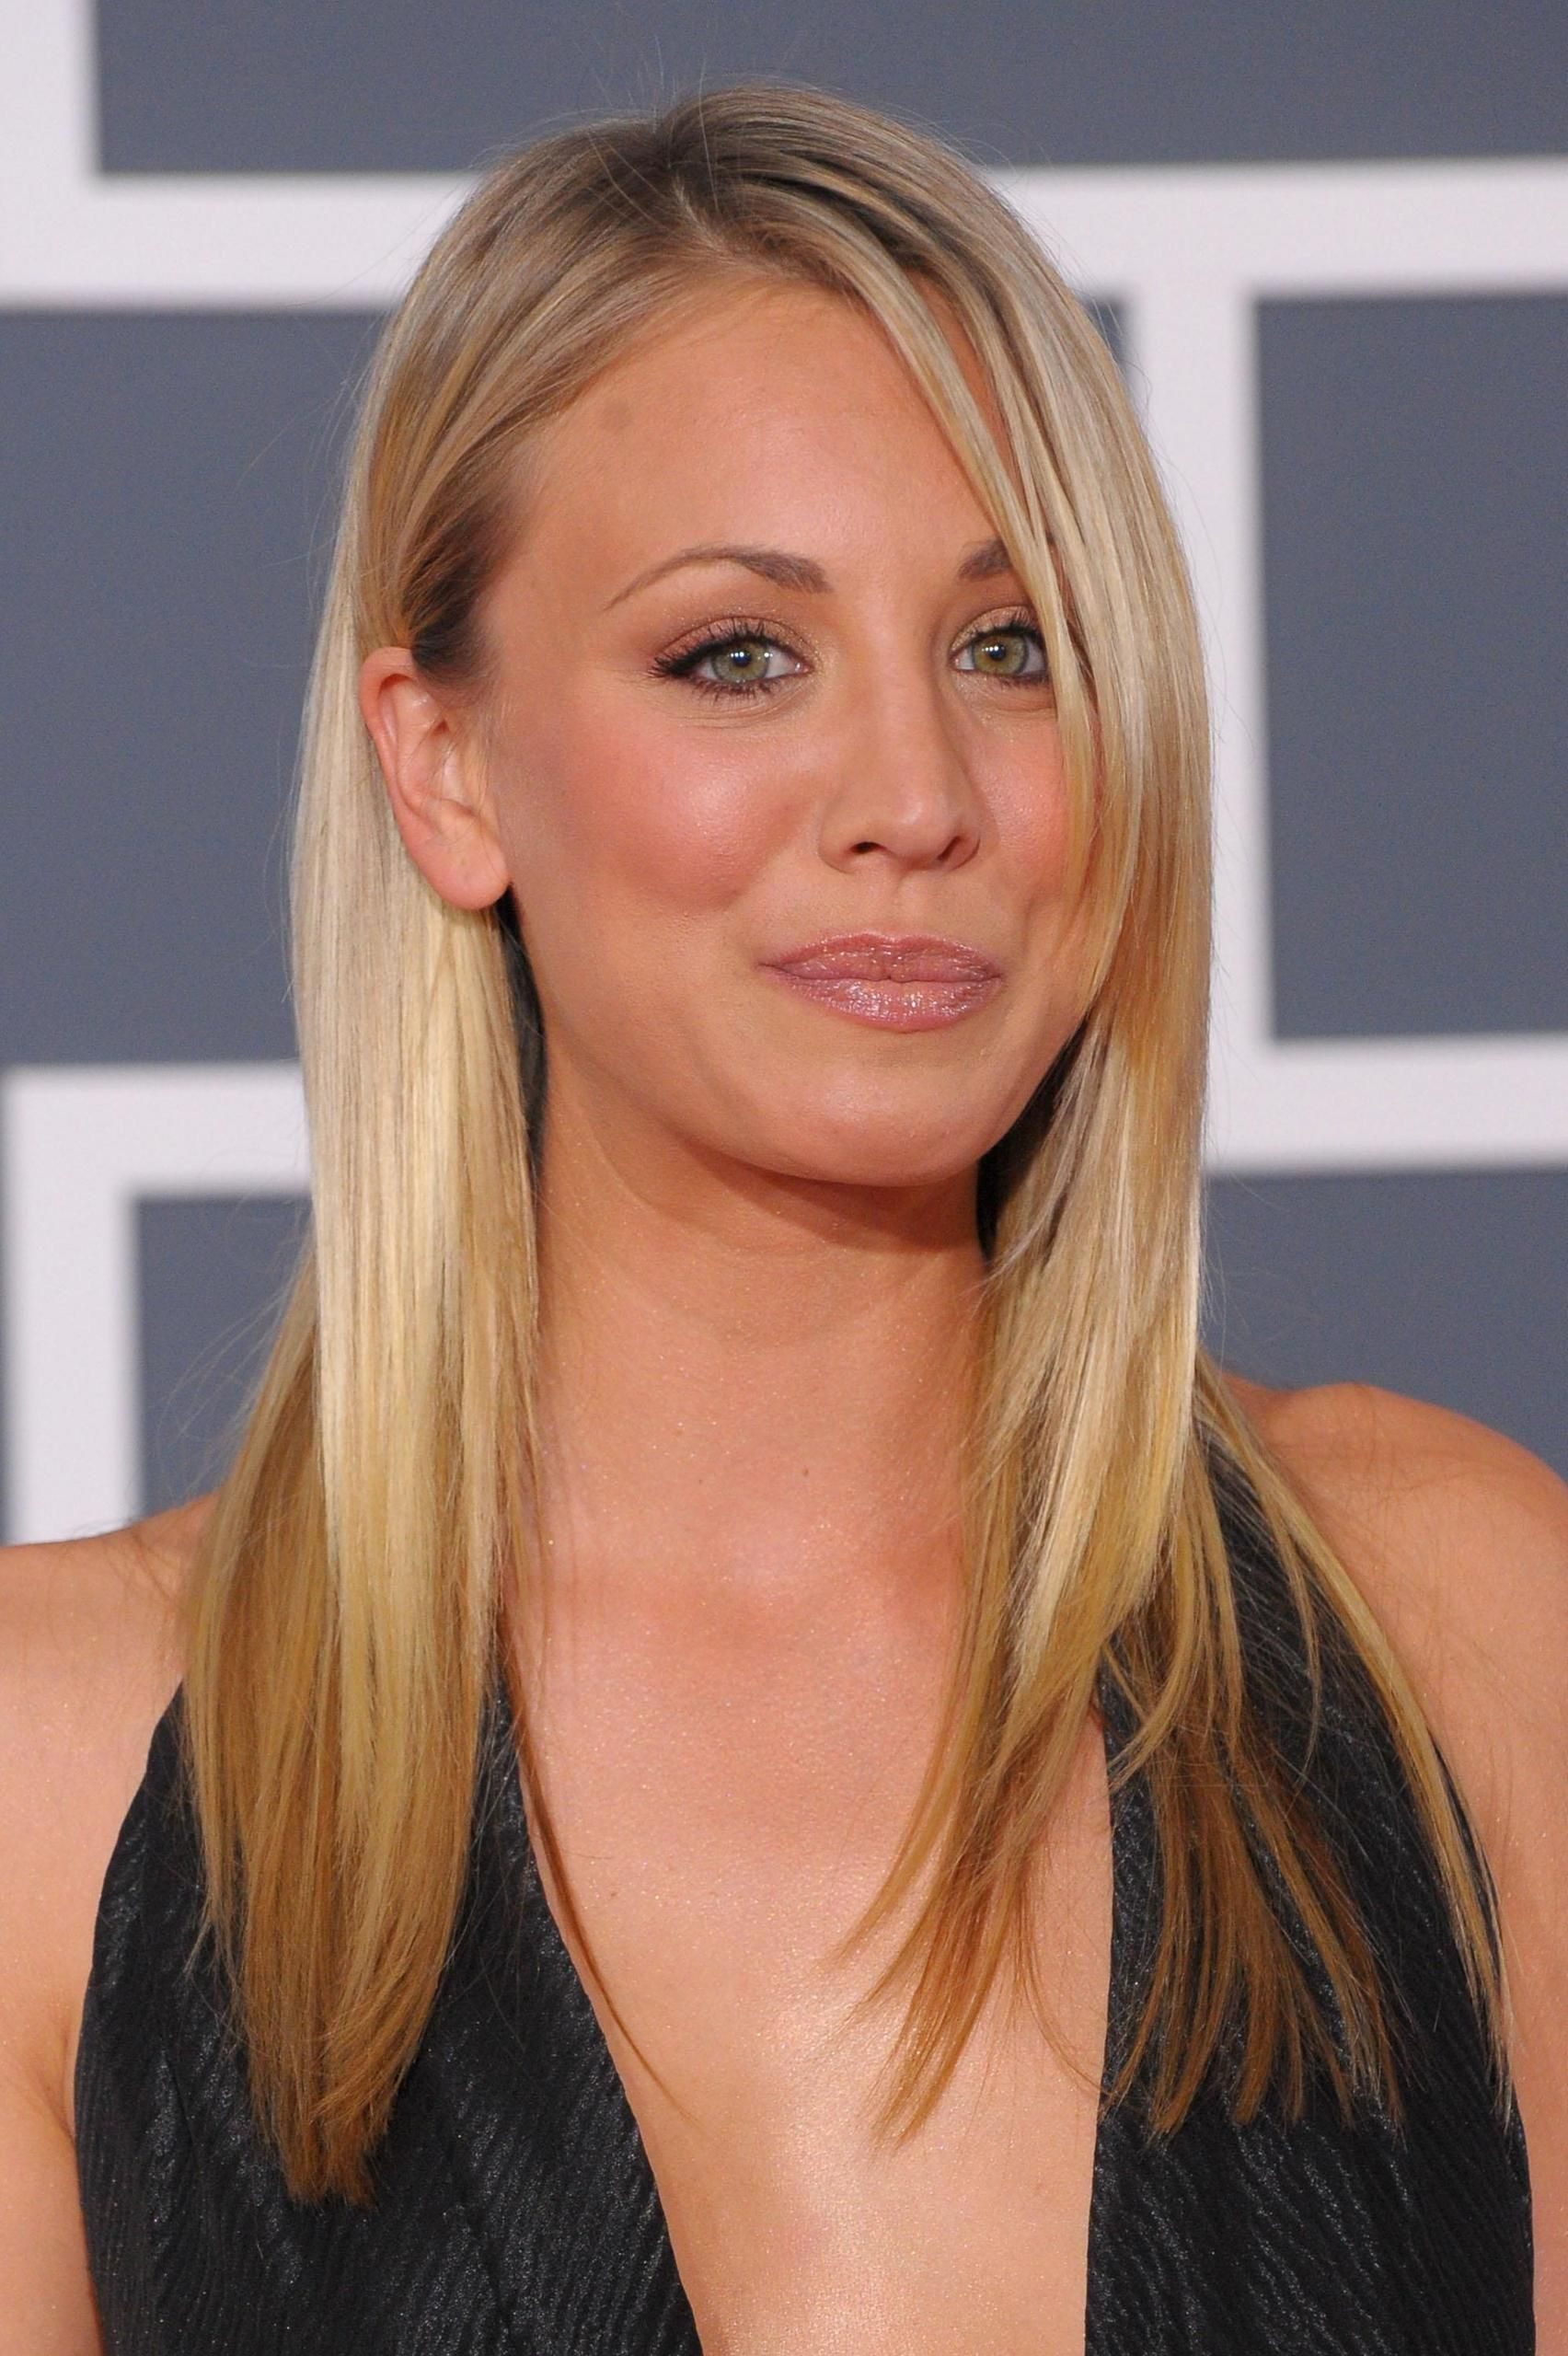 The Big Bang Theory Kaley Cuoco Women From My Favorite Shows Or